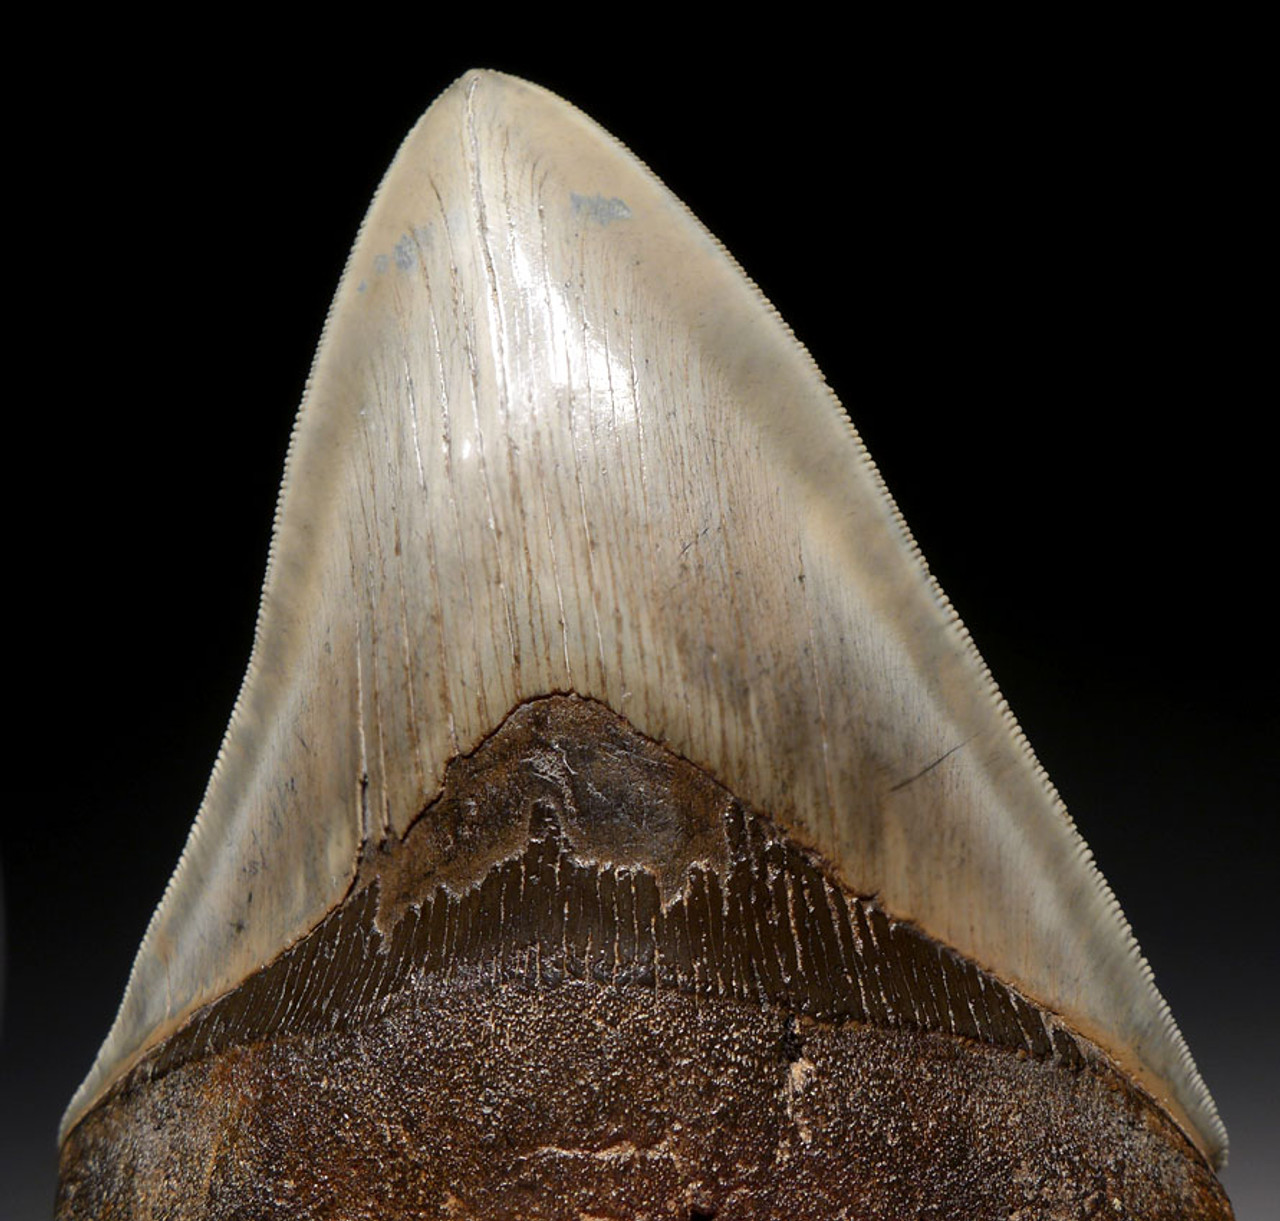 SH6-294- COLLECTOR GRADE 5.25 INCH MEGALODON SHARK FOSSIL TOOTH